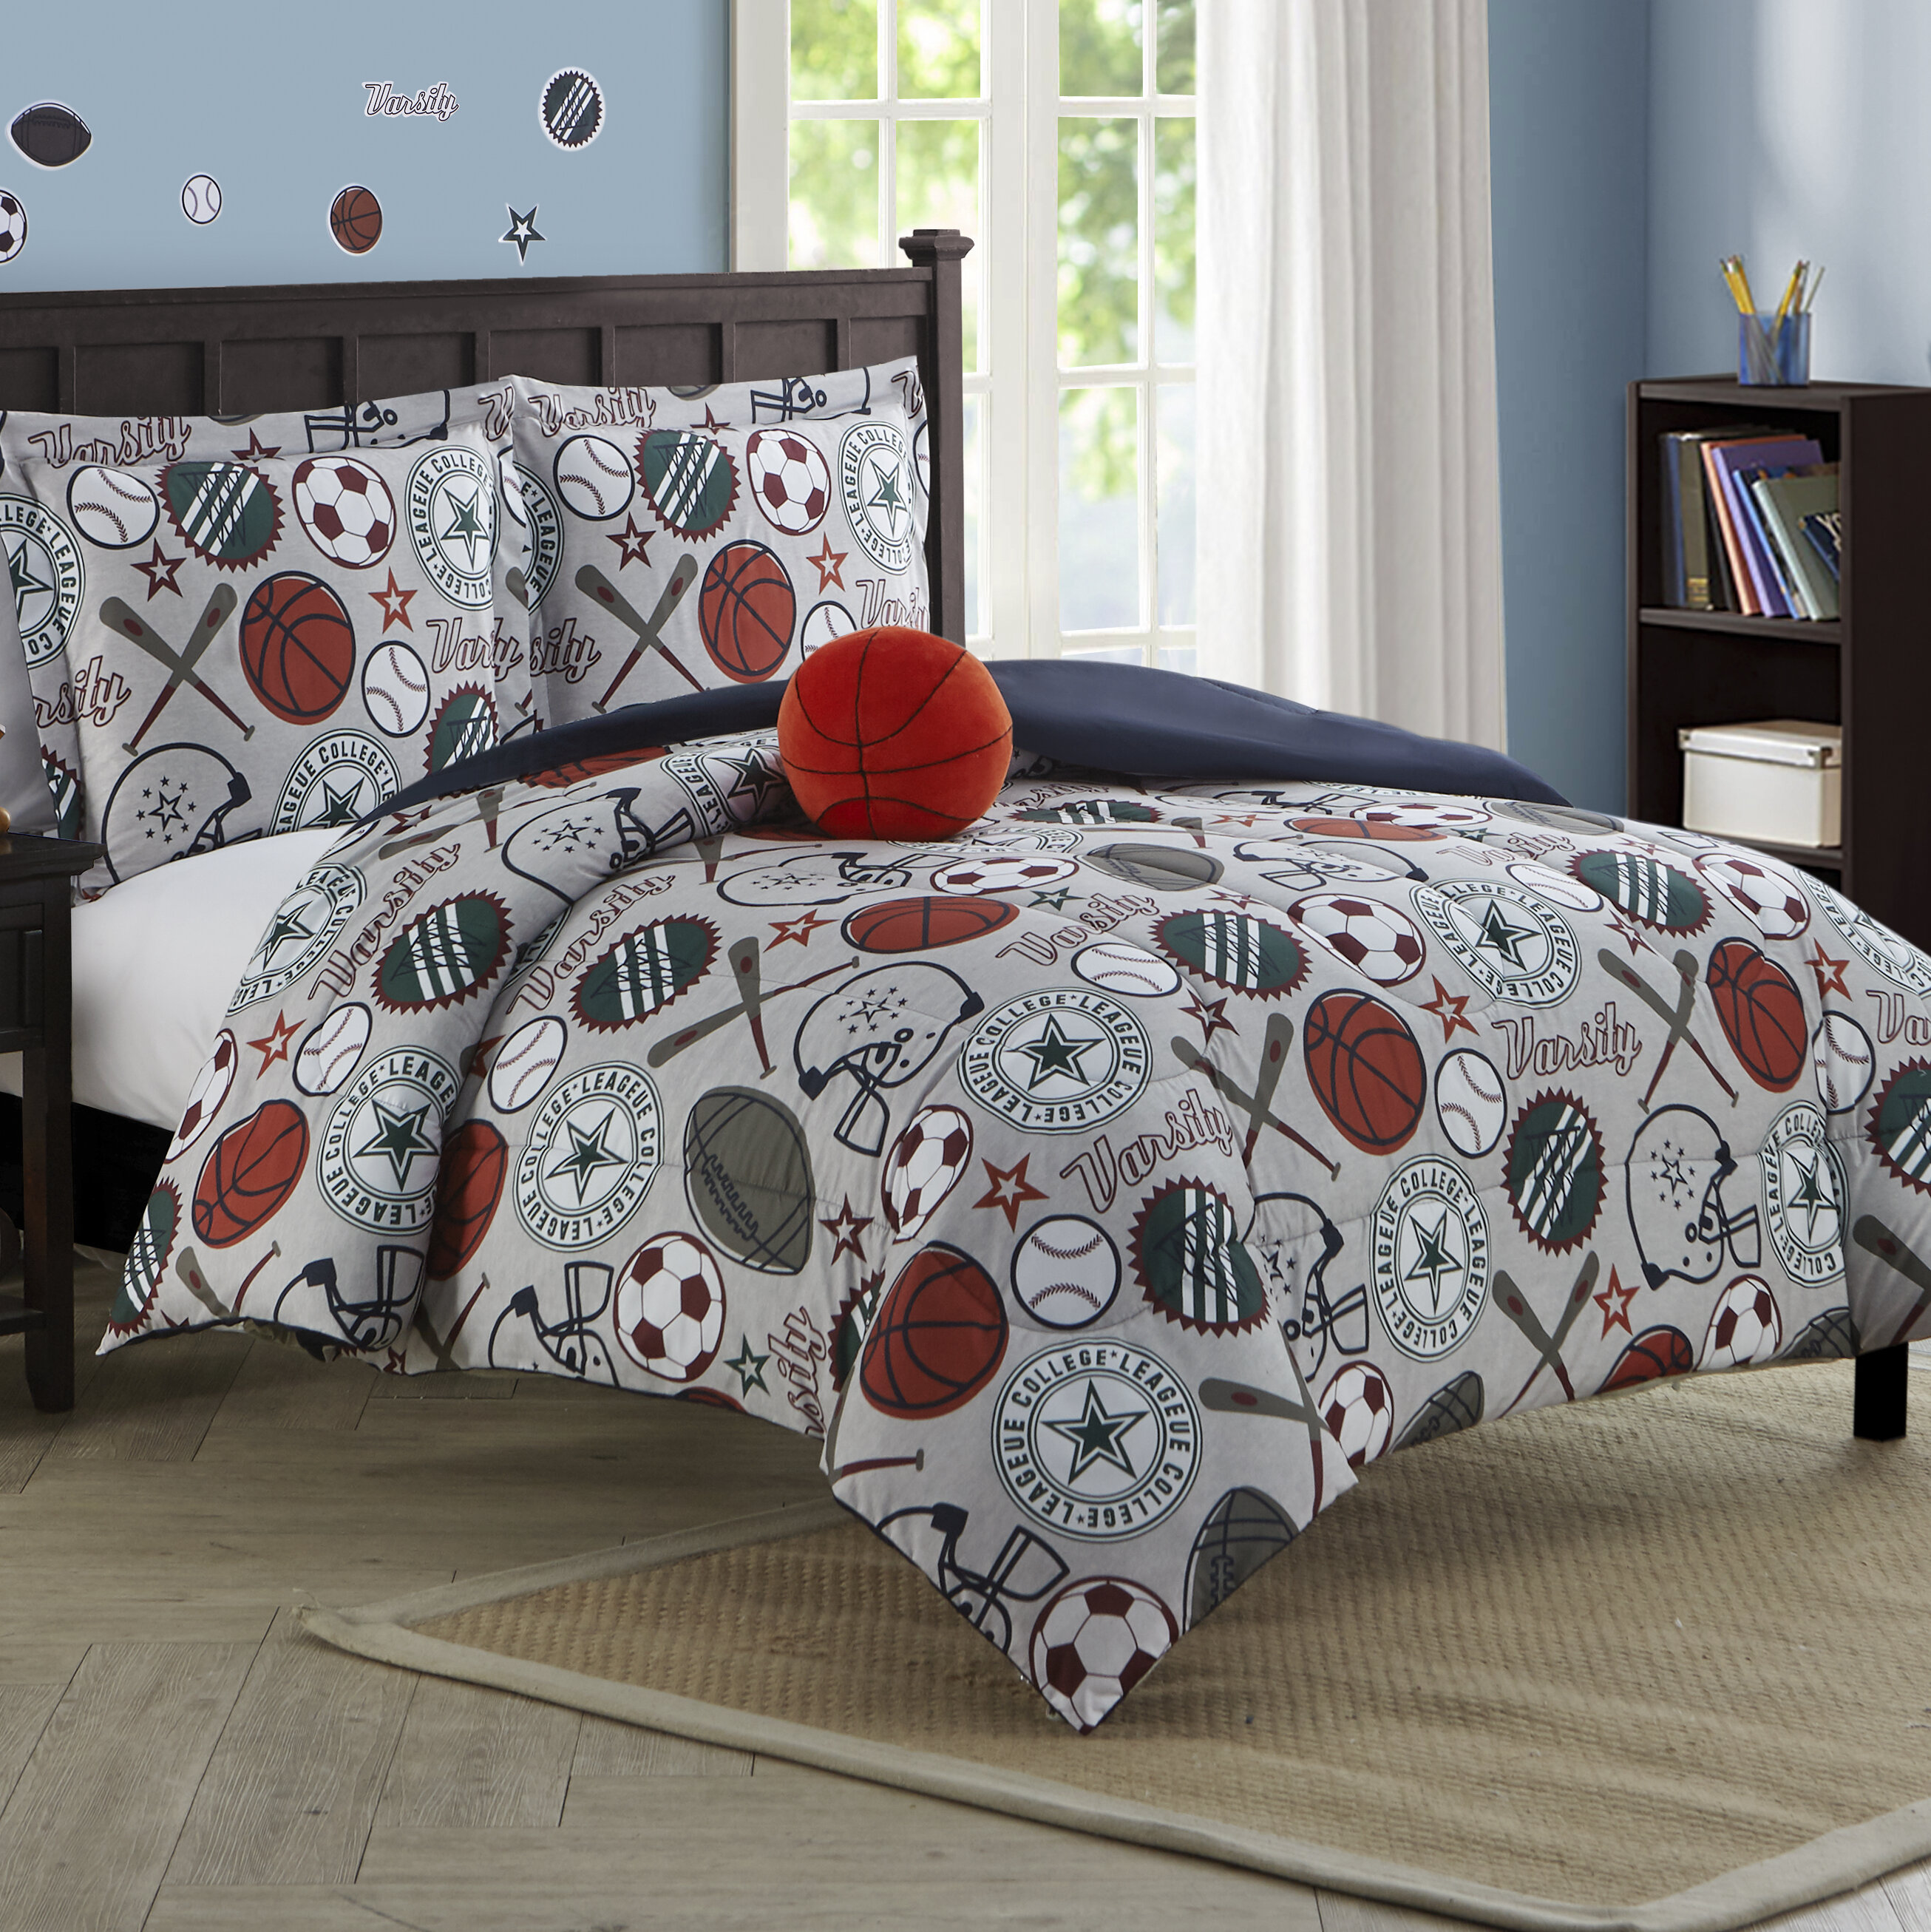 bath bedding today shipping star comforter boys overstock free product all jojo piece designs sweet twin sports set